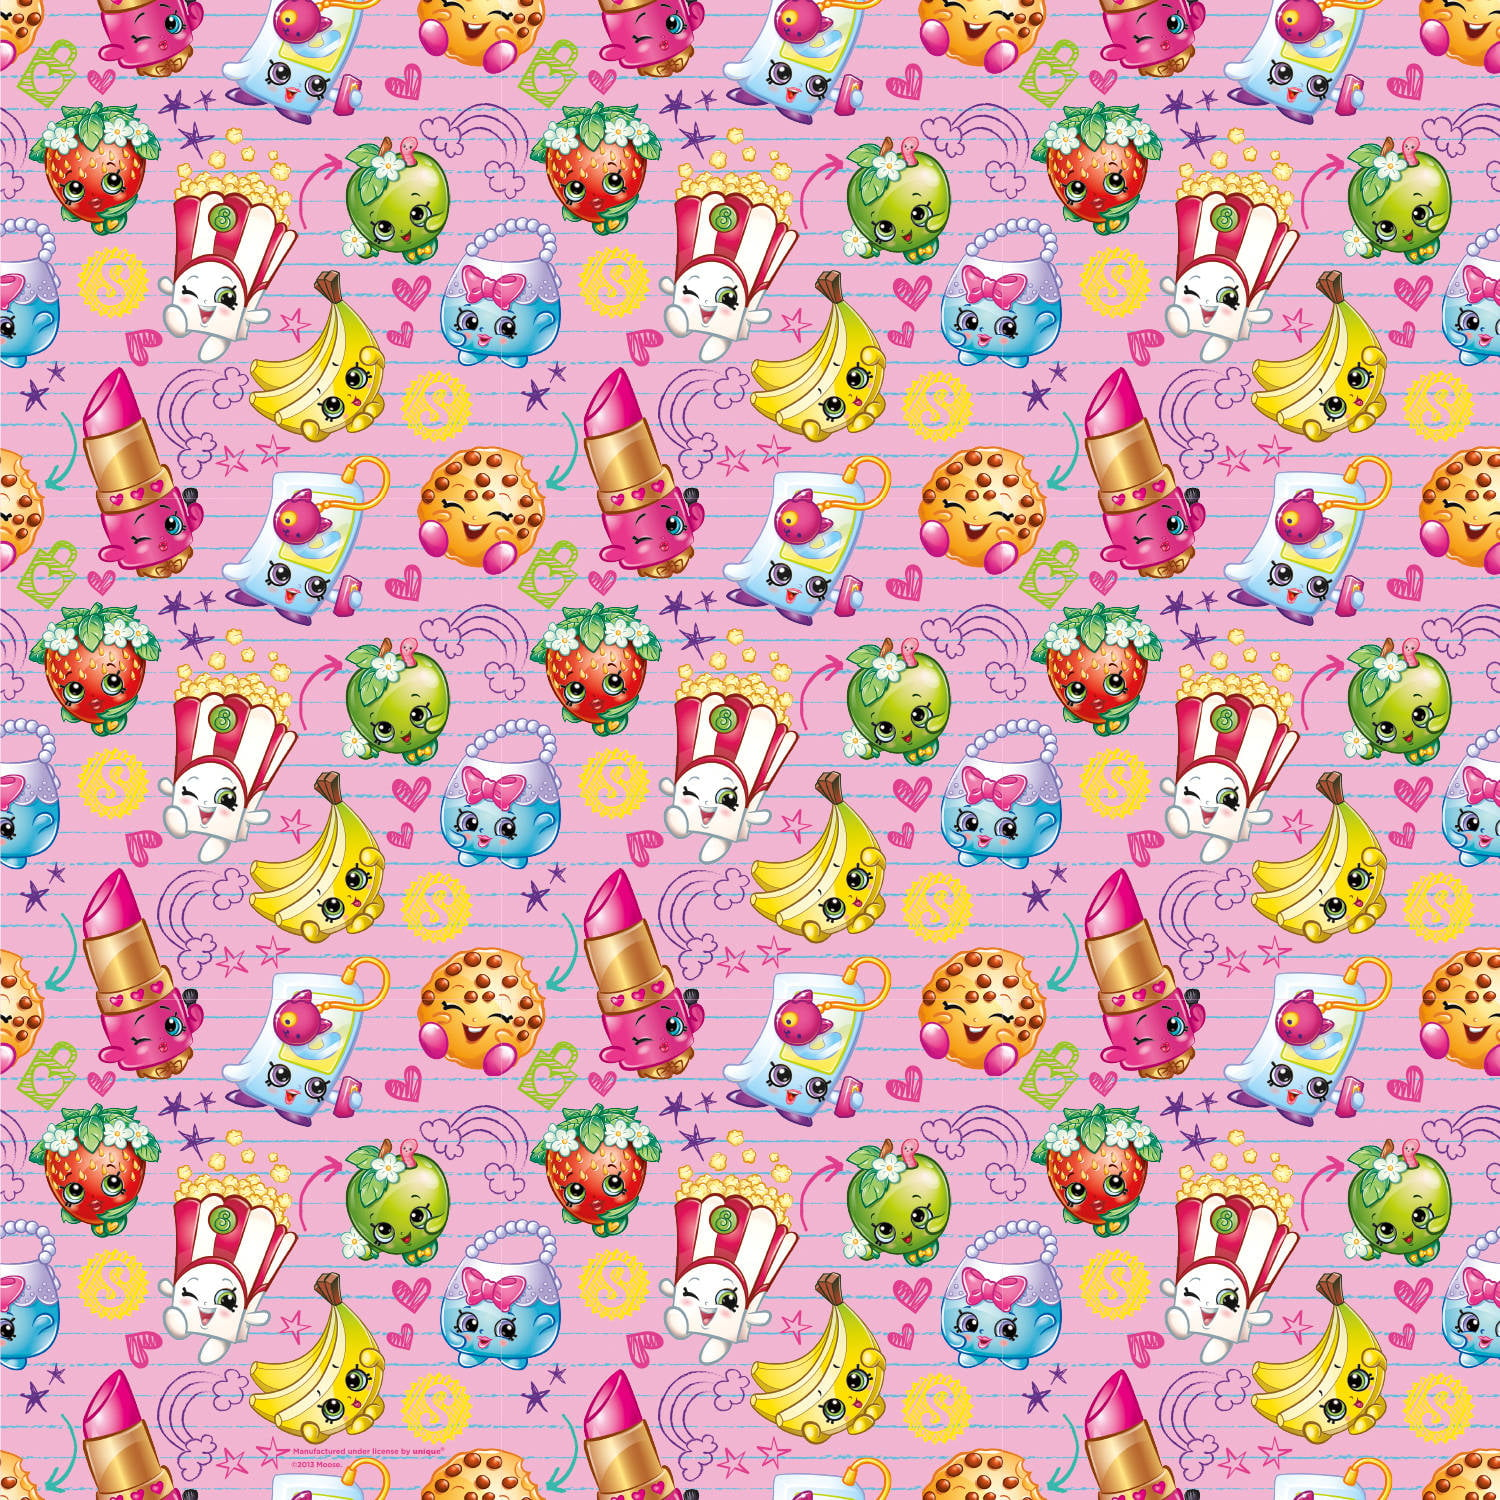 shopkins wrapping paper 5 x 2 5 ft 1ct walmart com